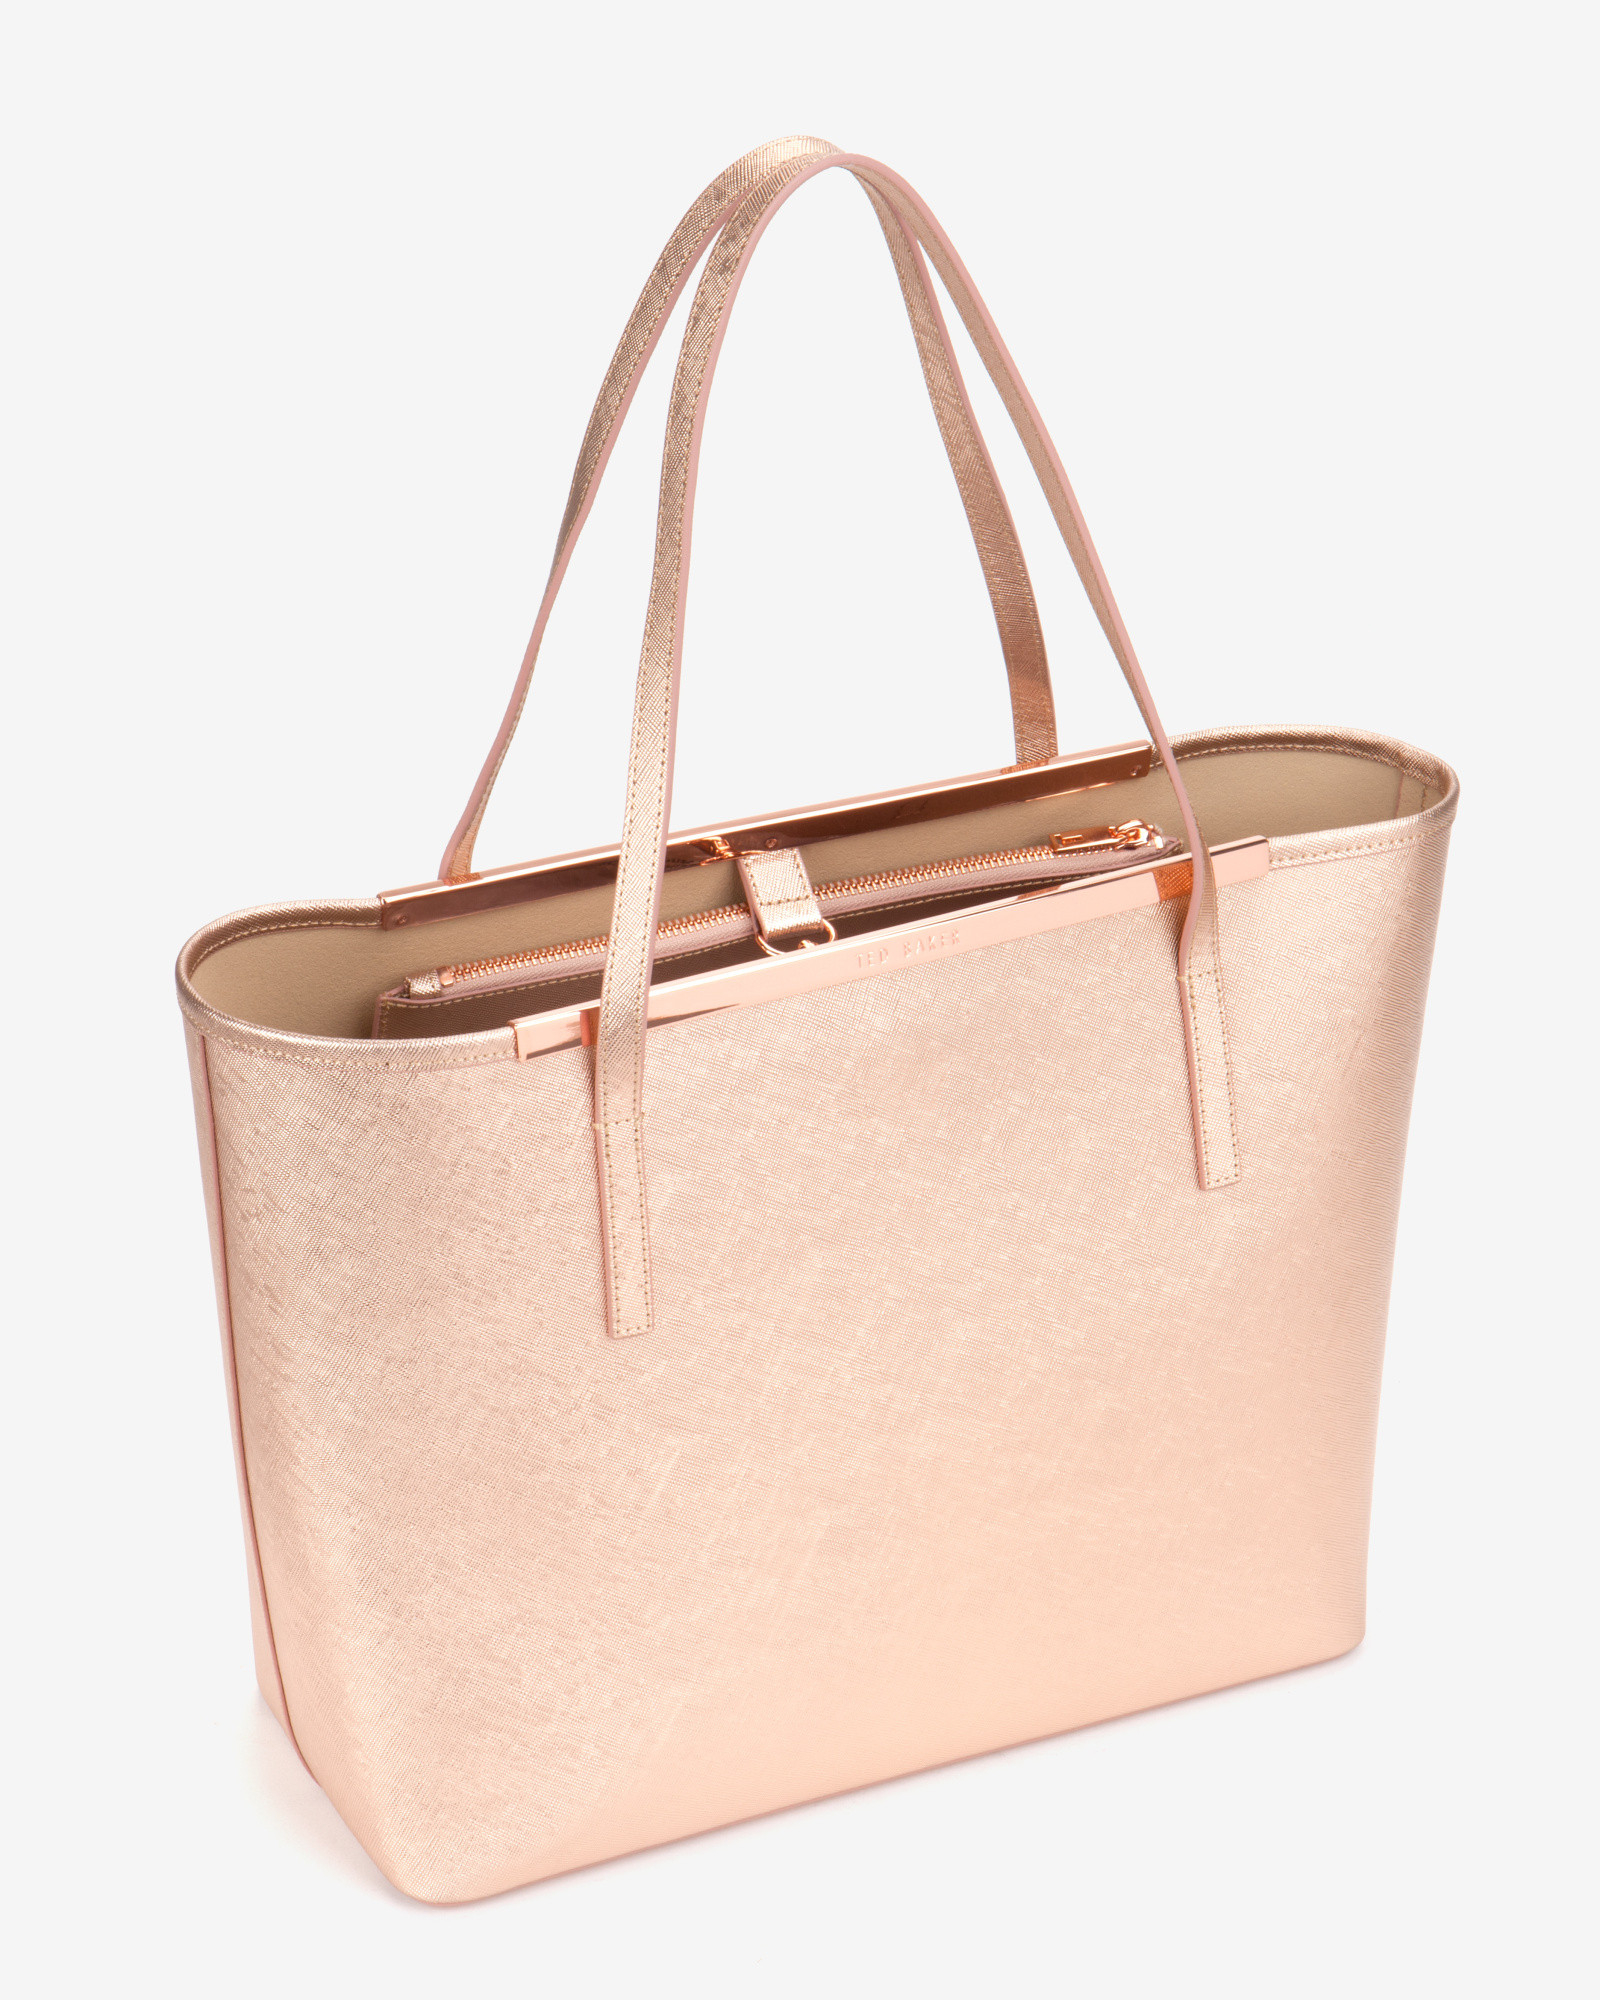 73132190a8679 Lyst - Ted Baker Jasmena Metallic Tote in Pink